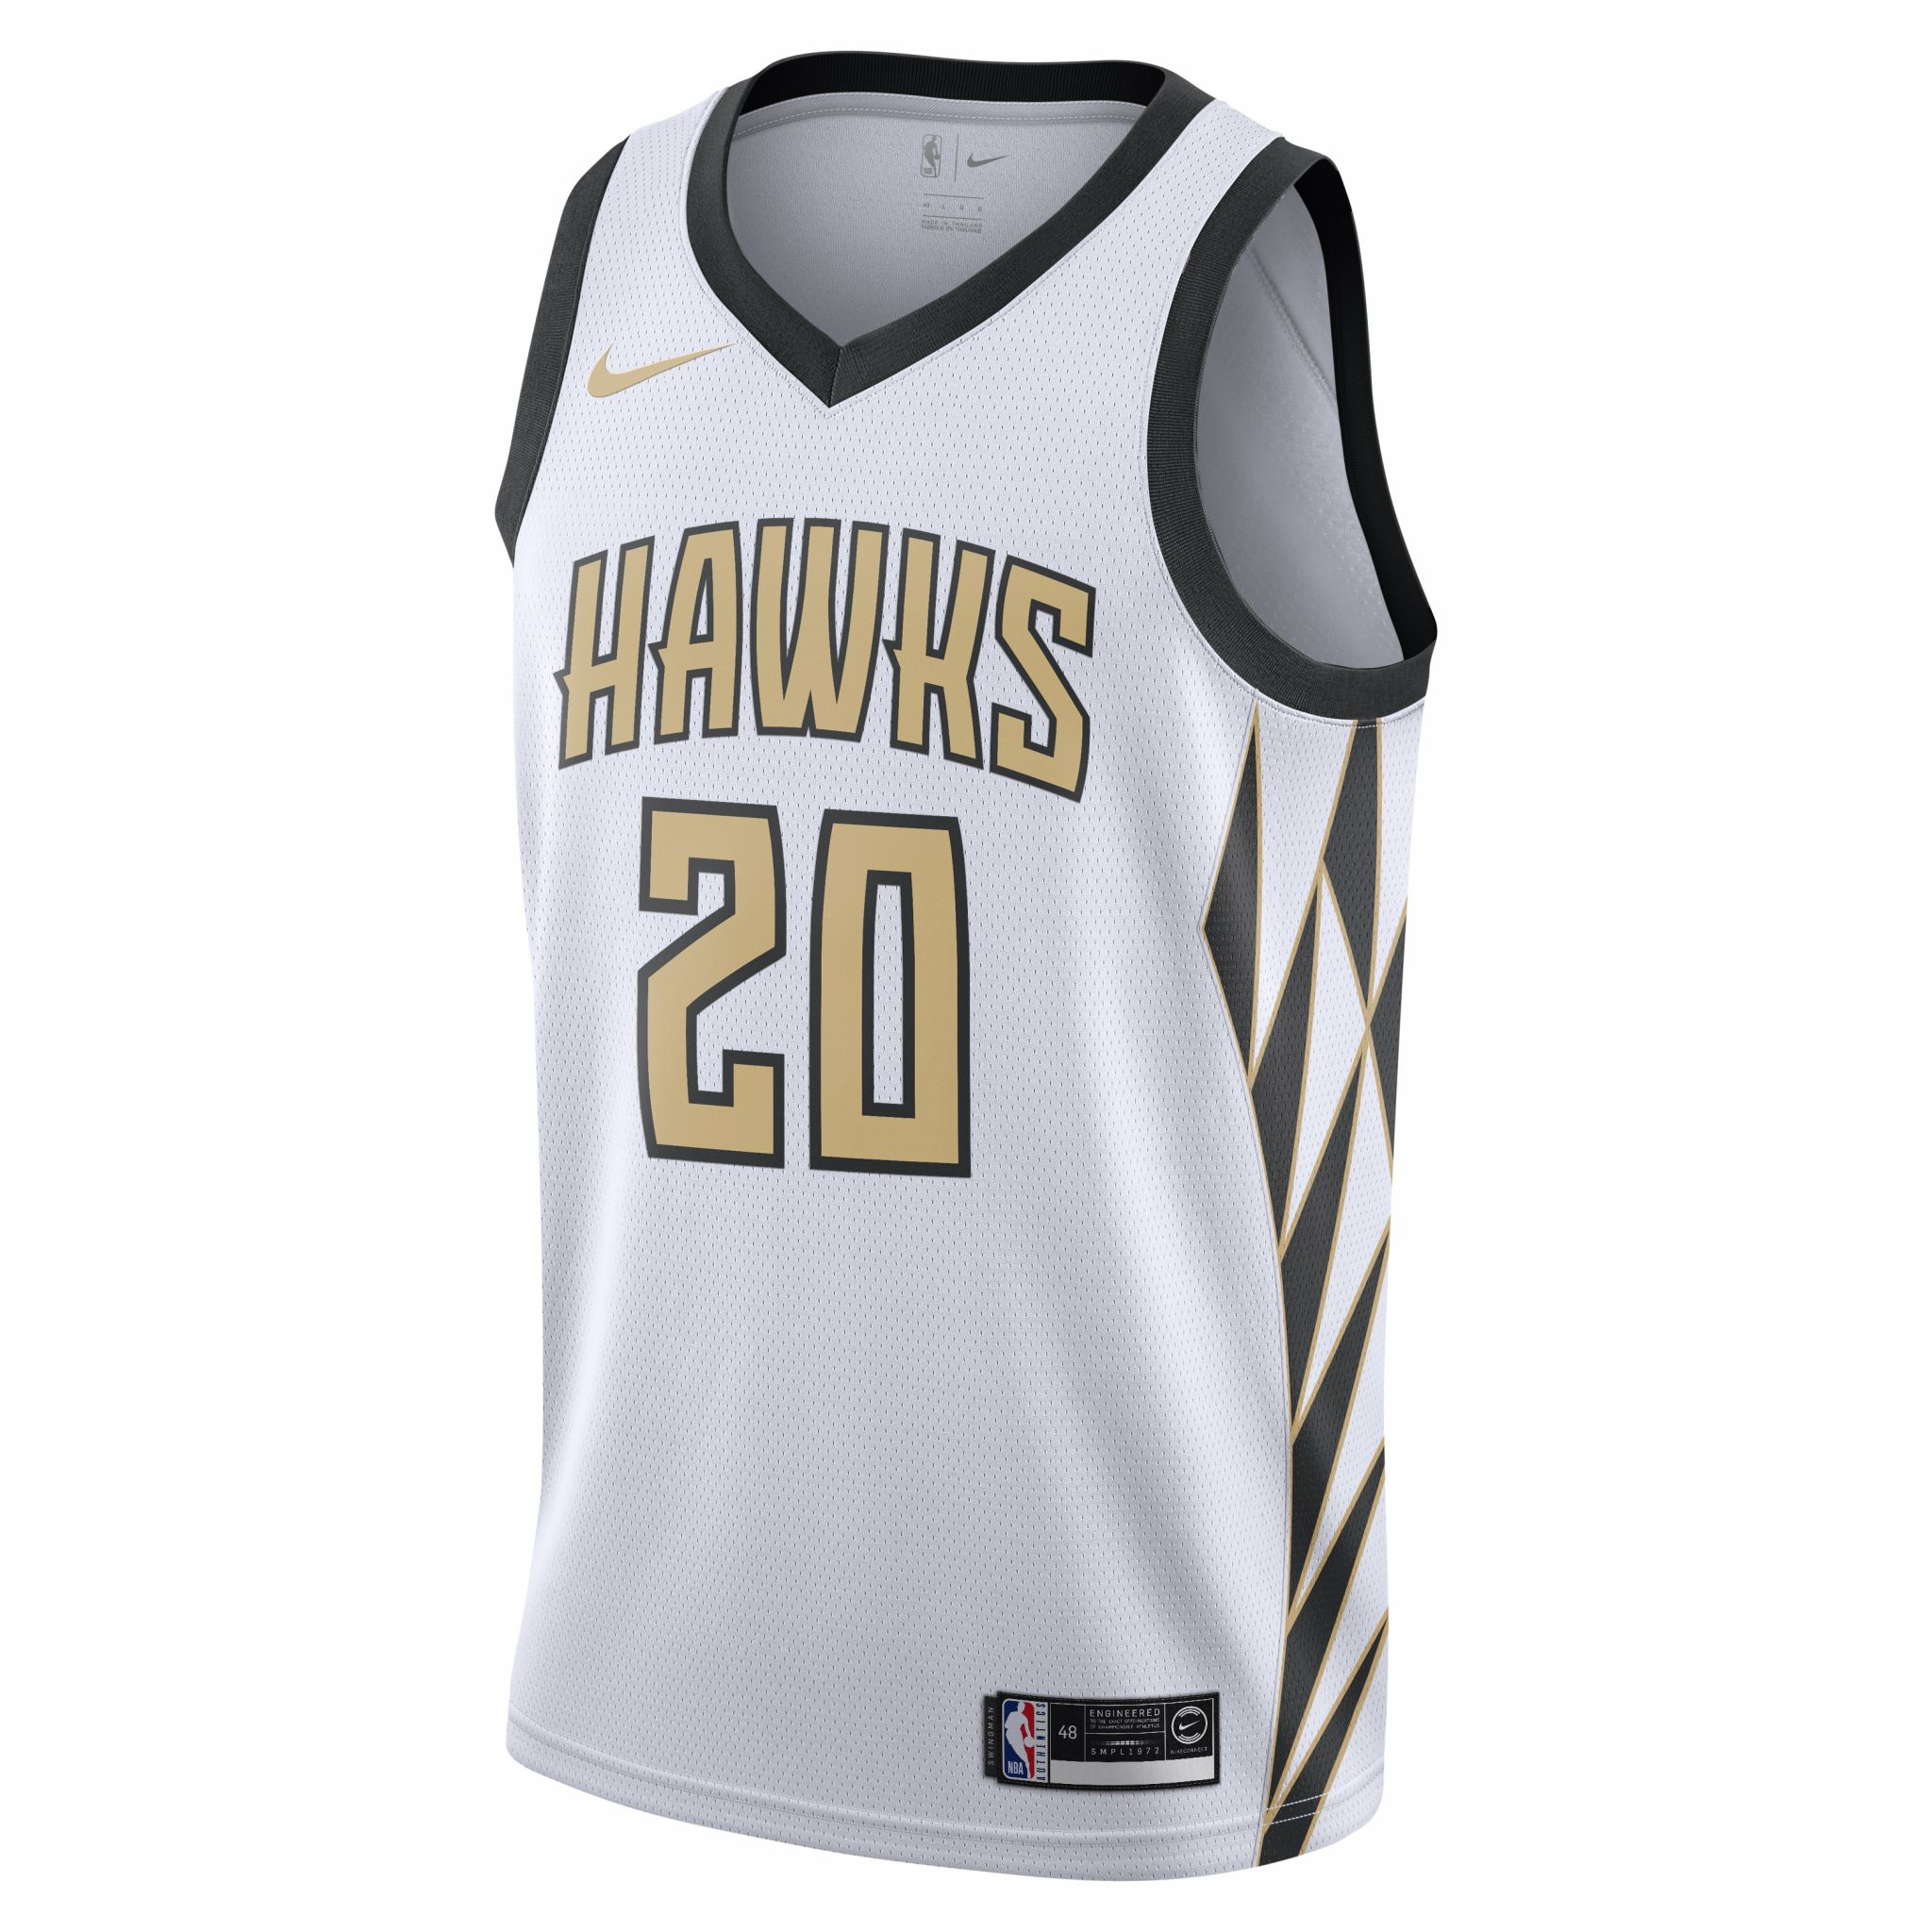 8042f275212 Google News - Nike unveils all 30 NBA City Edition uniforms - Overview